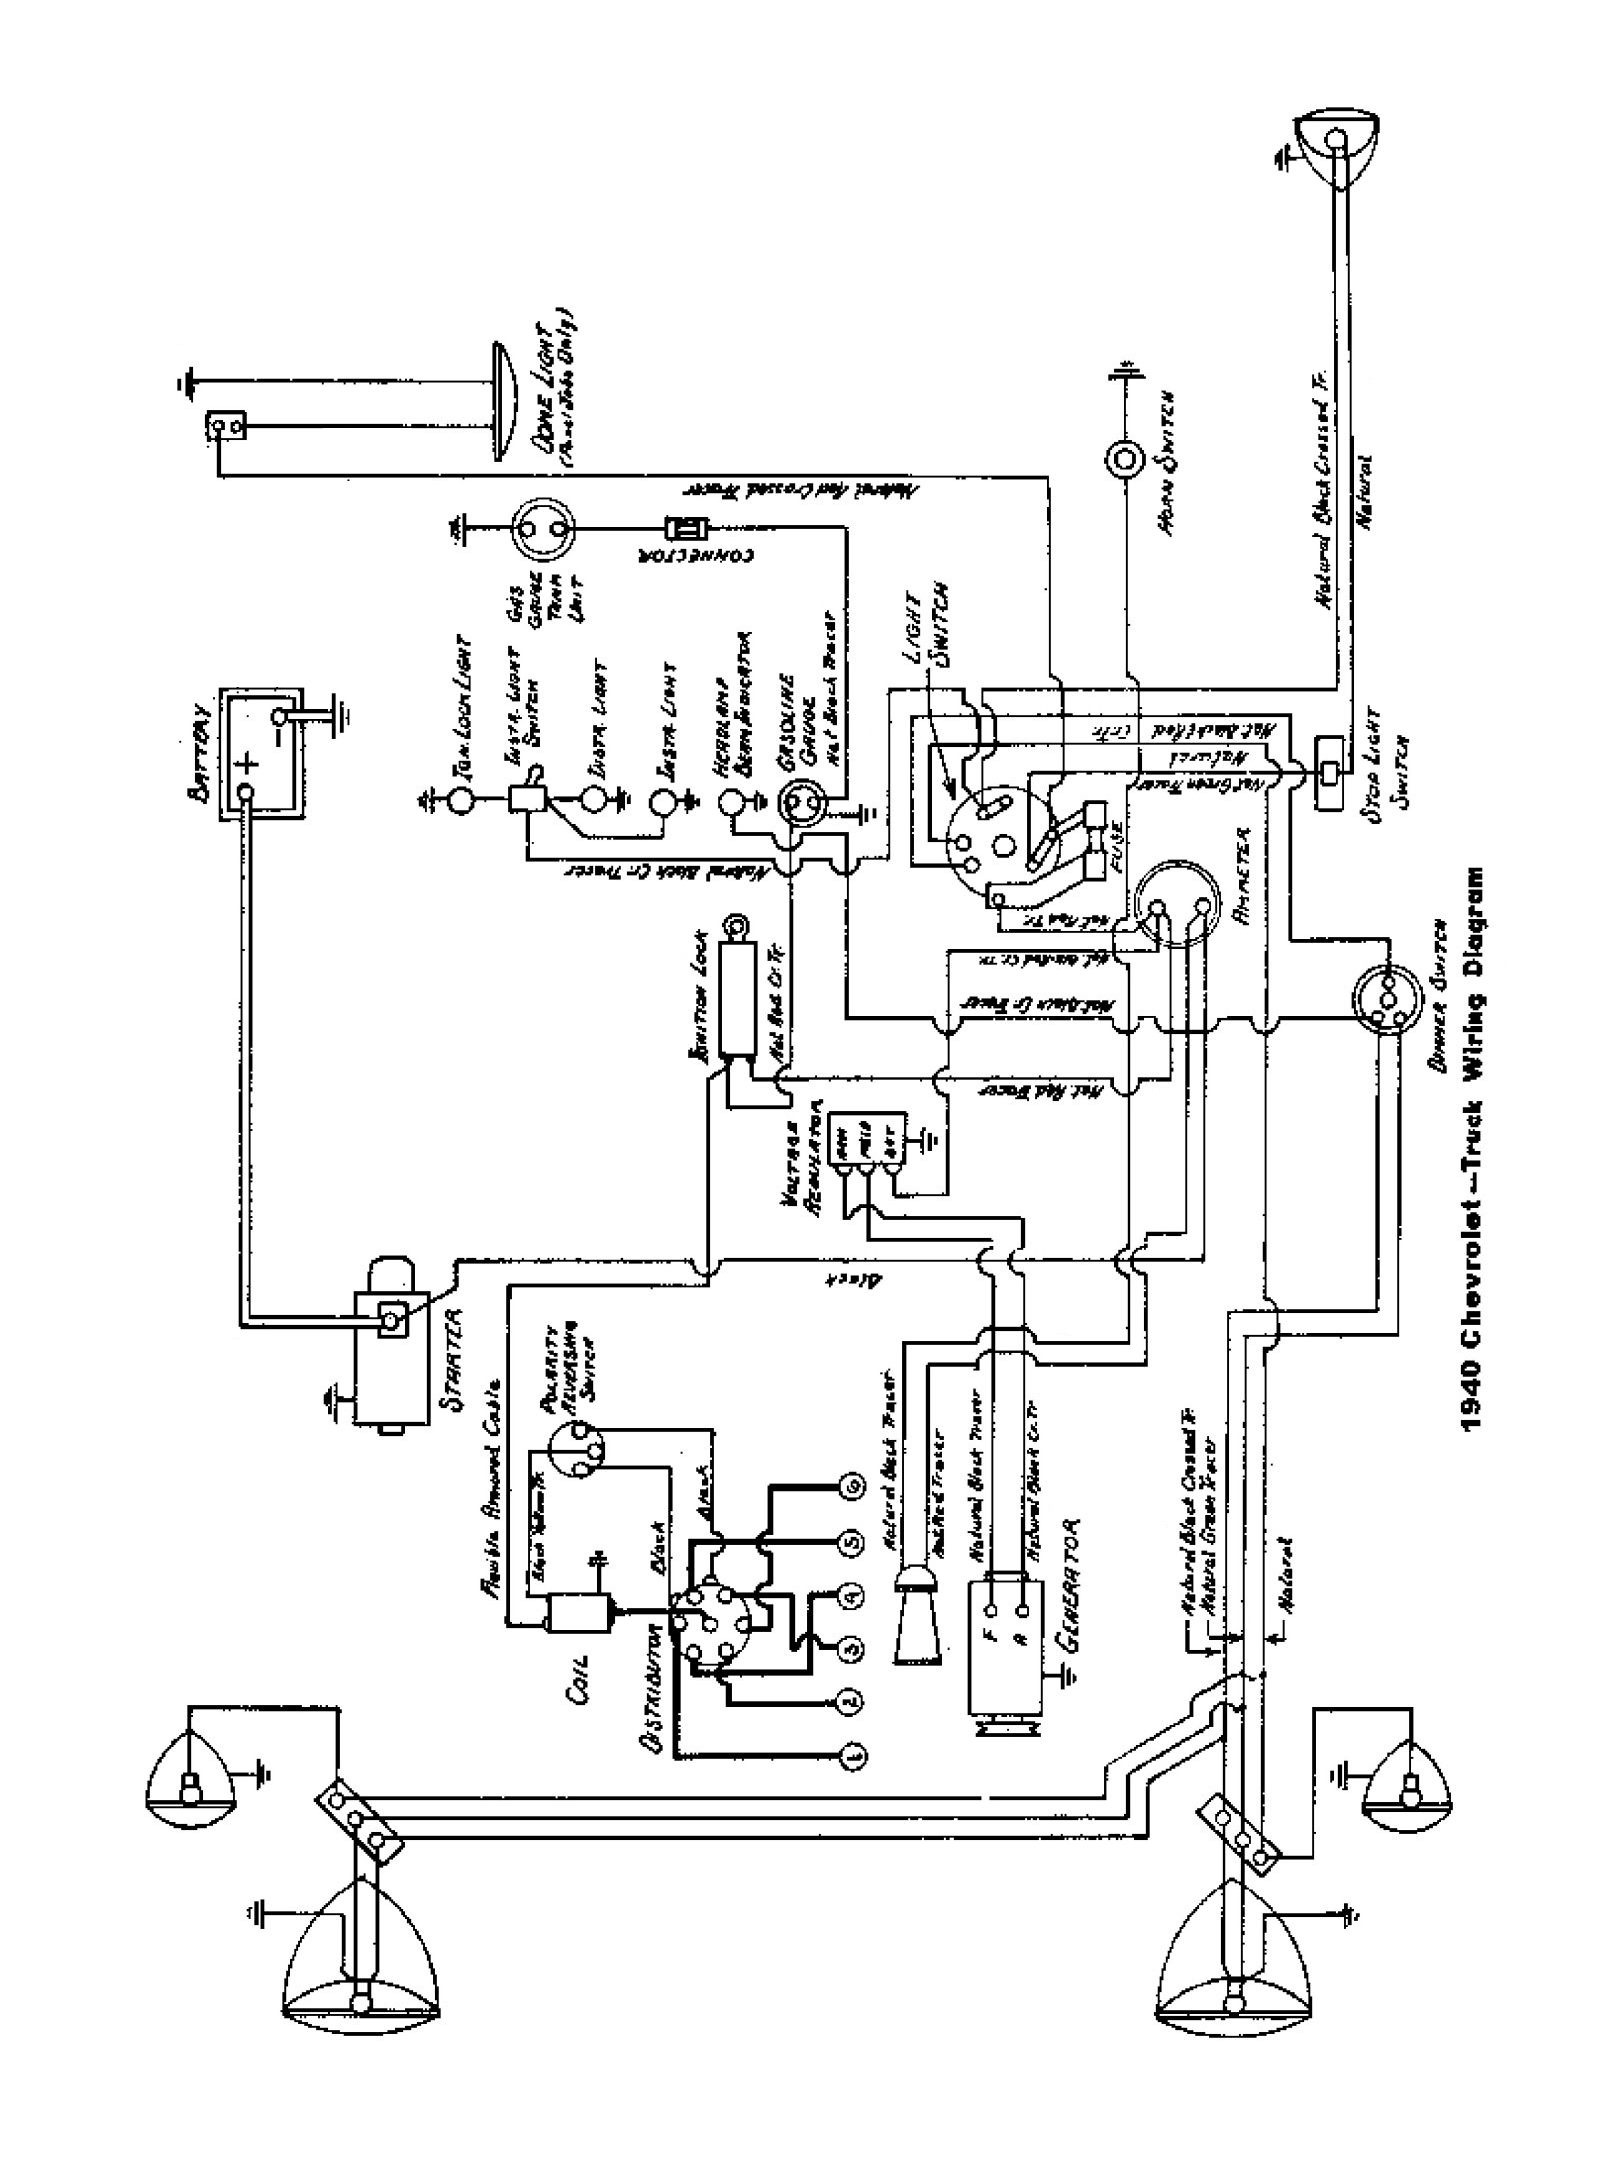 40truck chevy wiring diagrams 1957 chevy wiring diagram at mr168.co